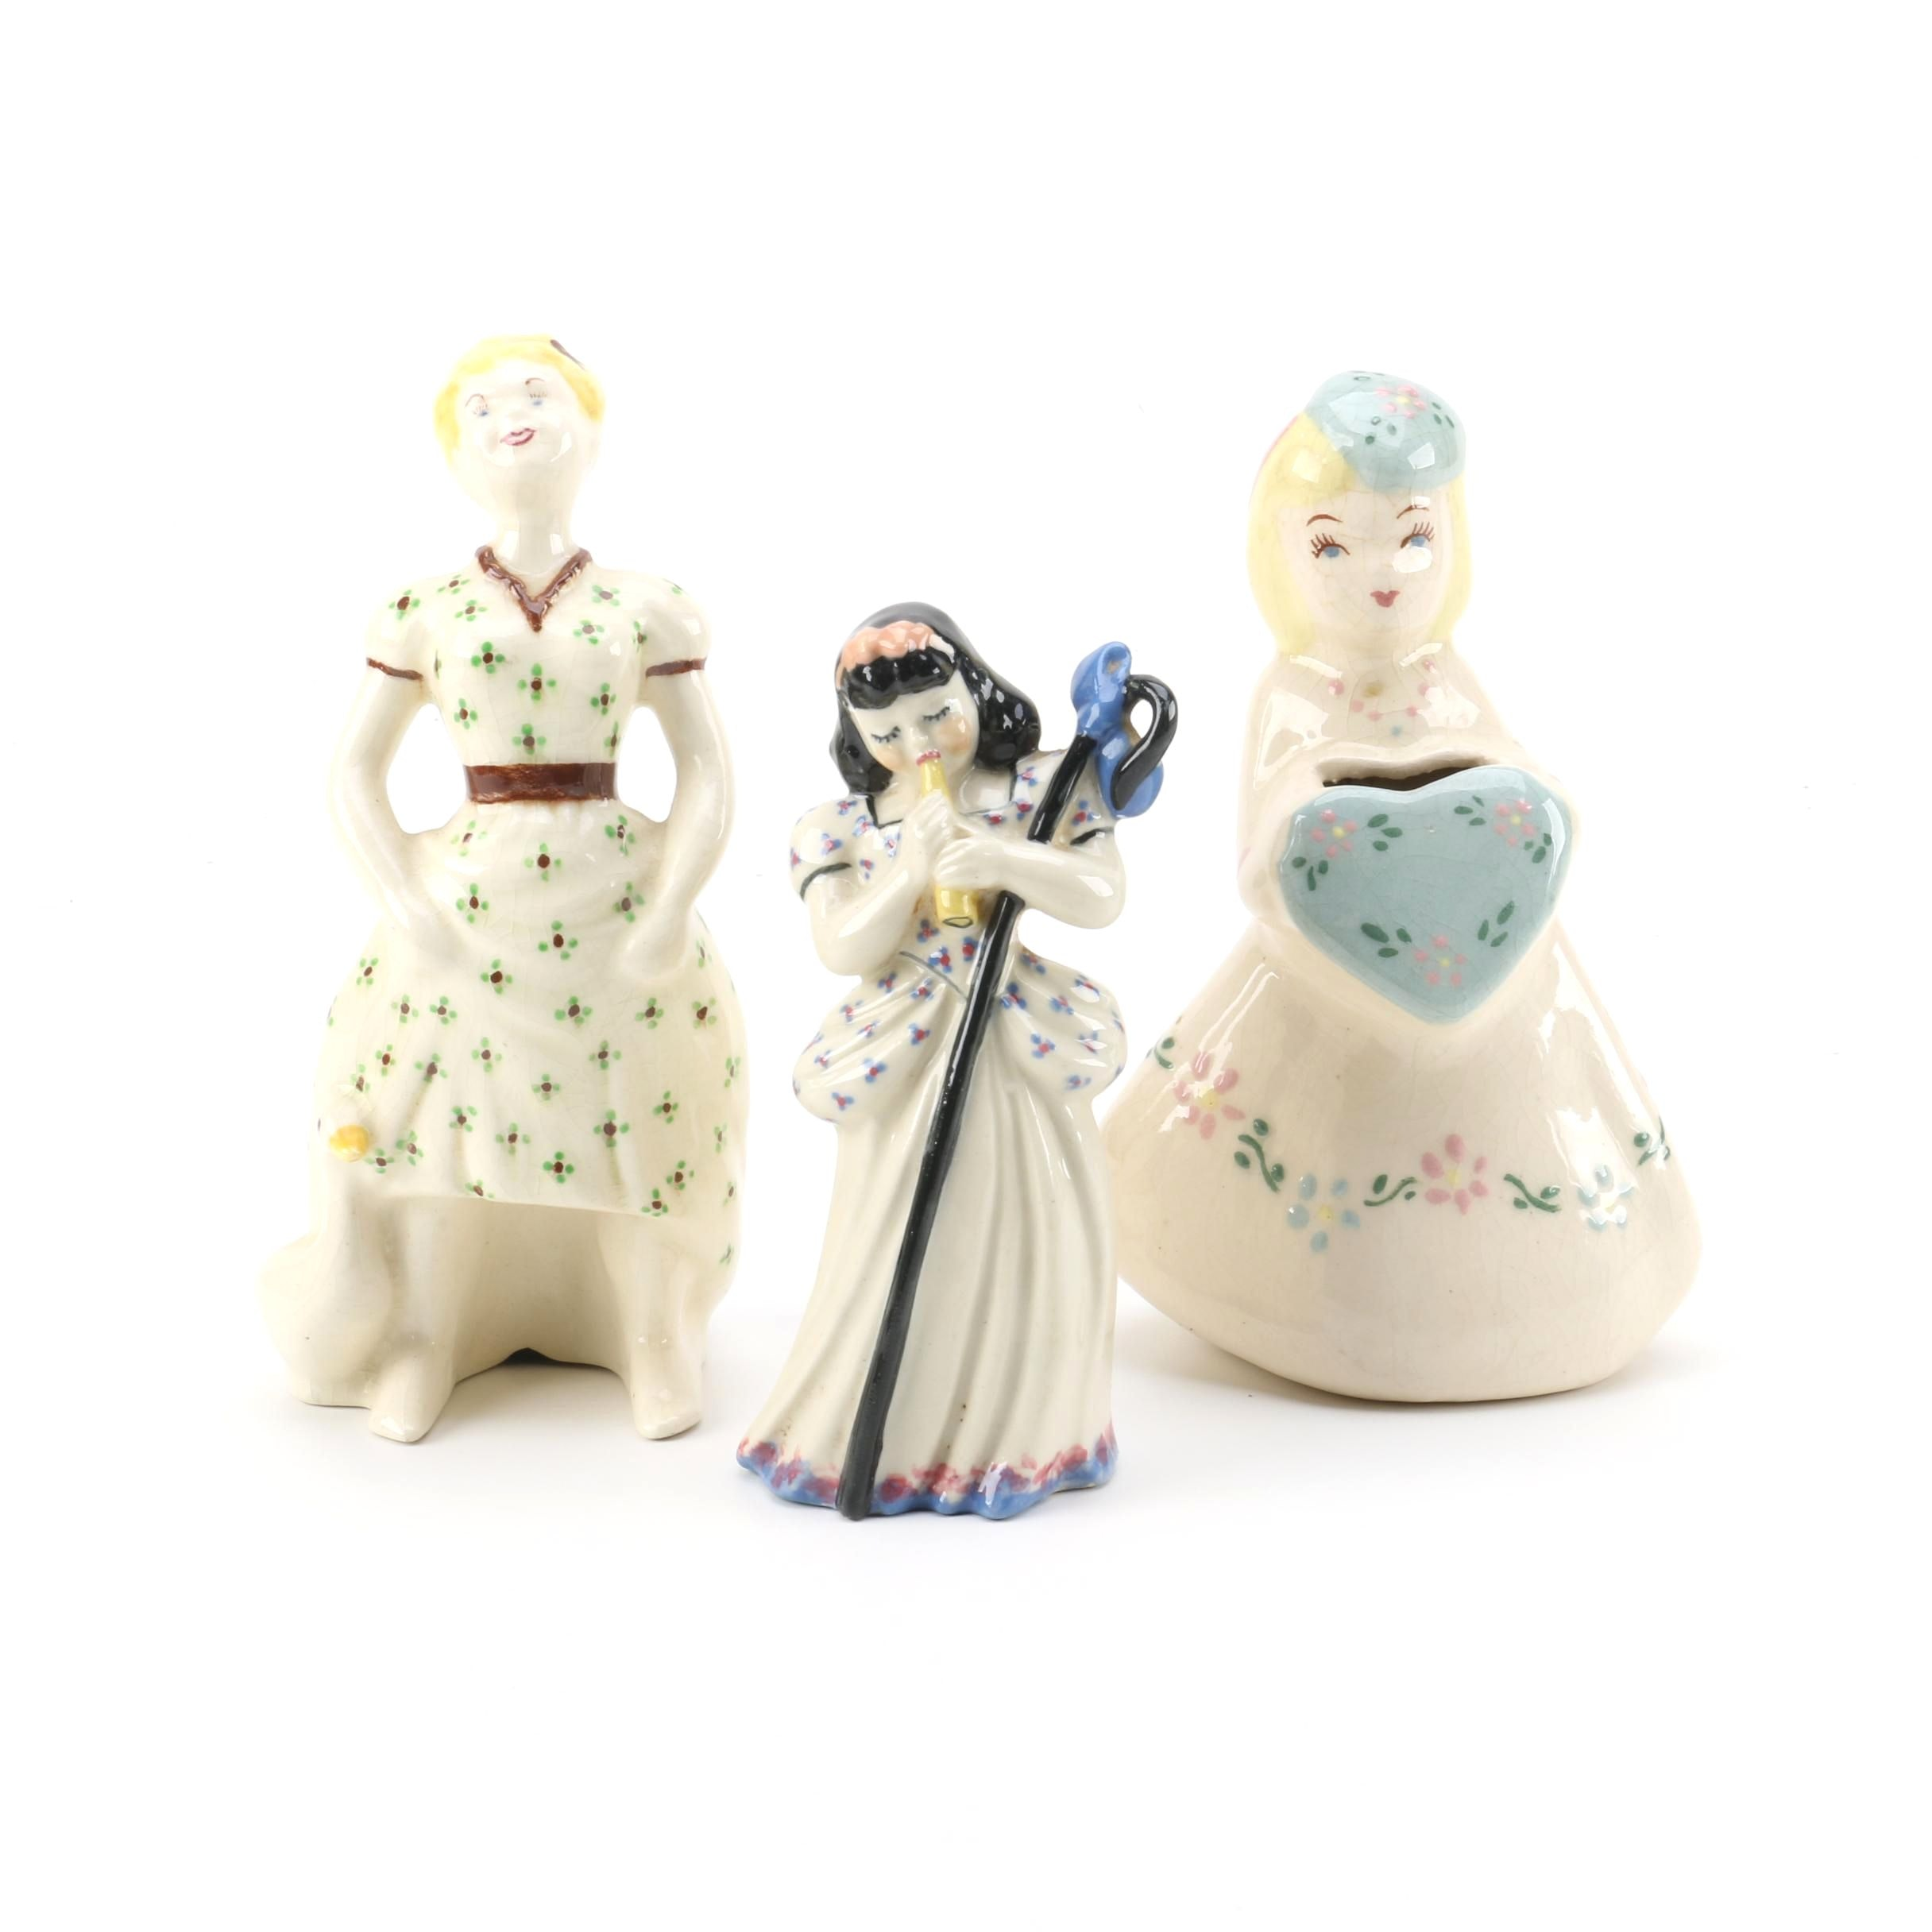 Goose Gal, Flute Girl and Heart Girl Figurines